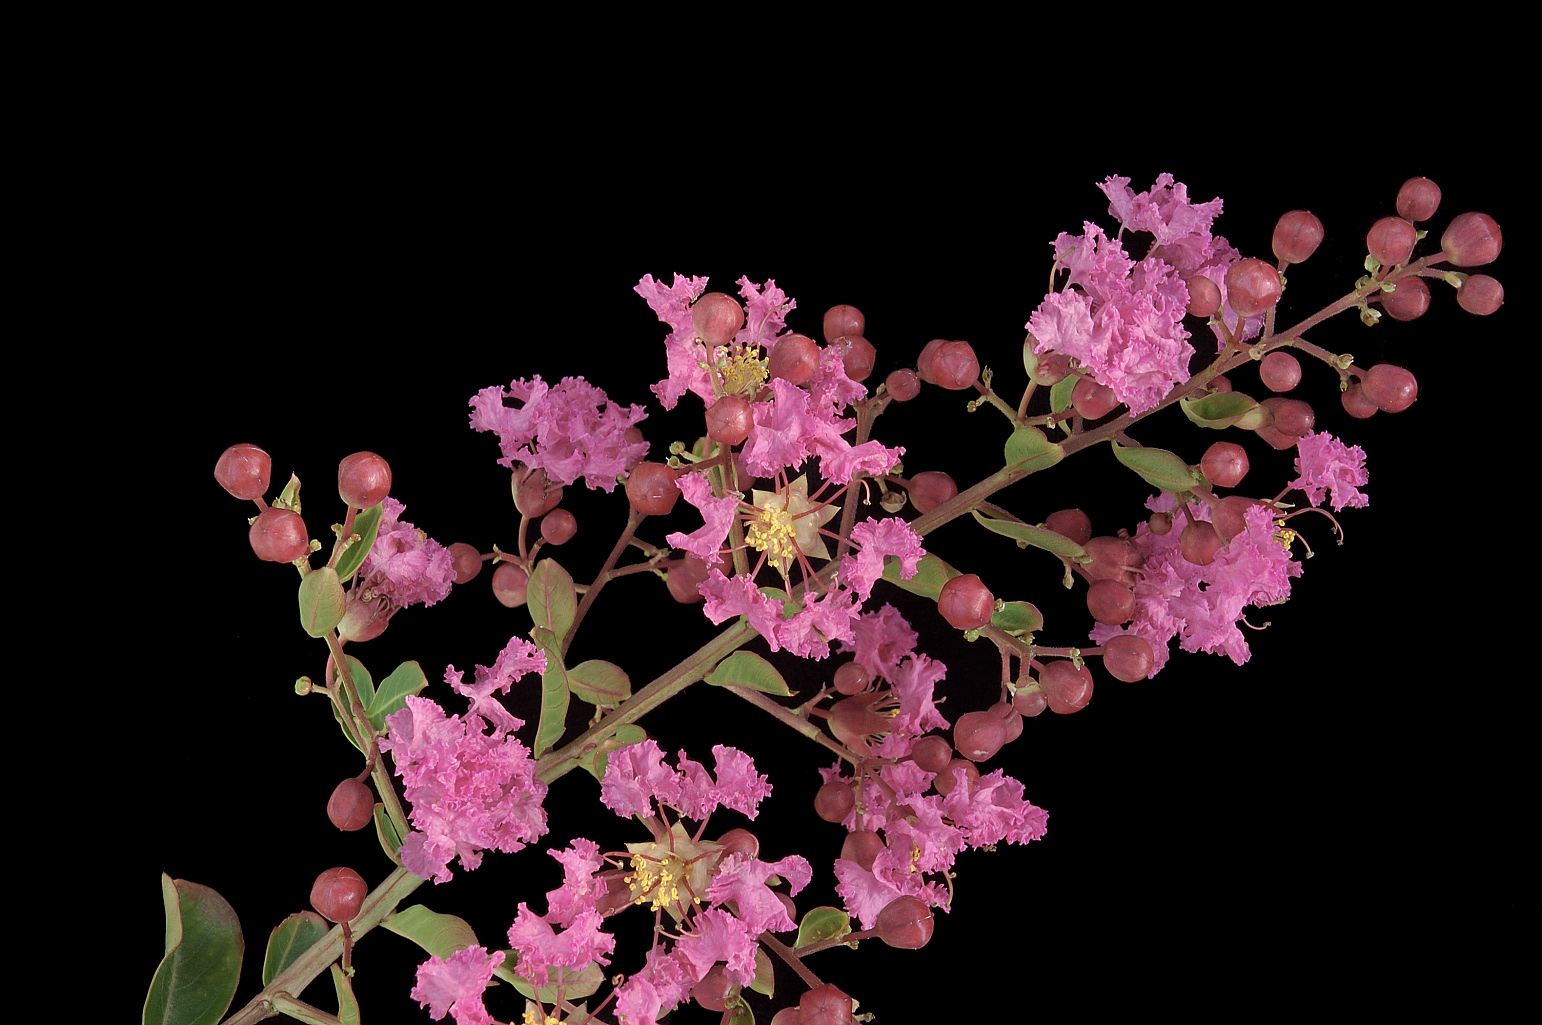 Showy panicle 15 cm long; the pink petals have a long and slender claw and a limb with crinkled margins